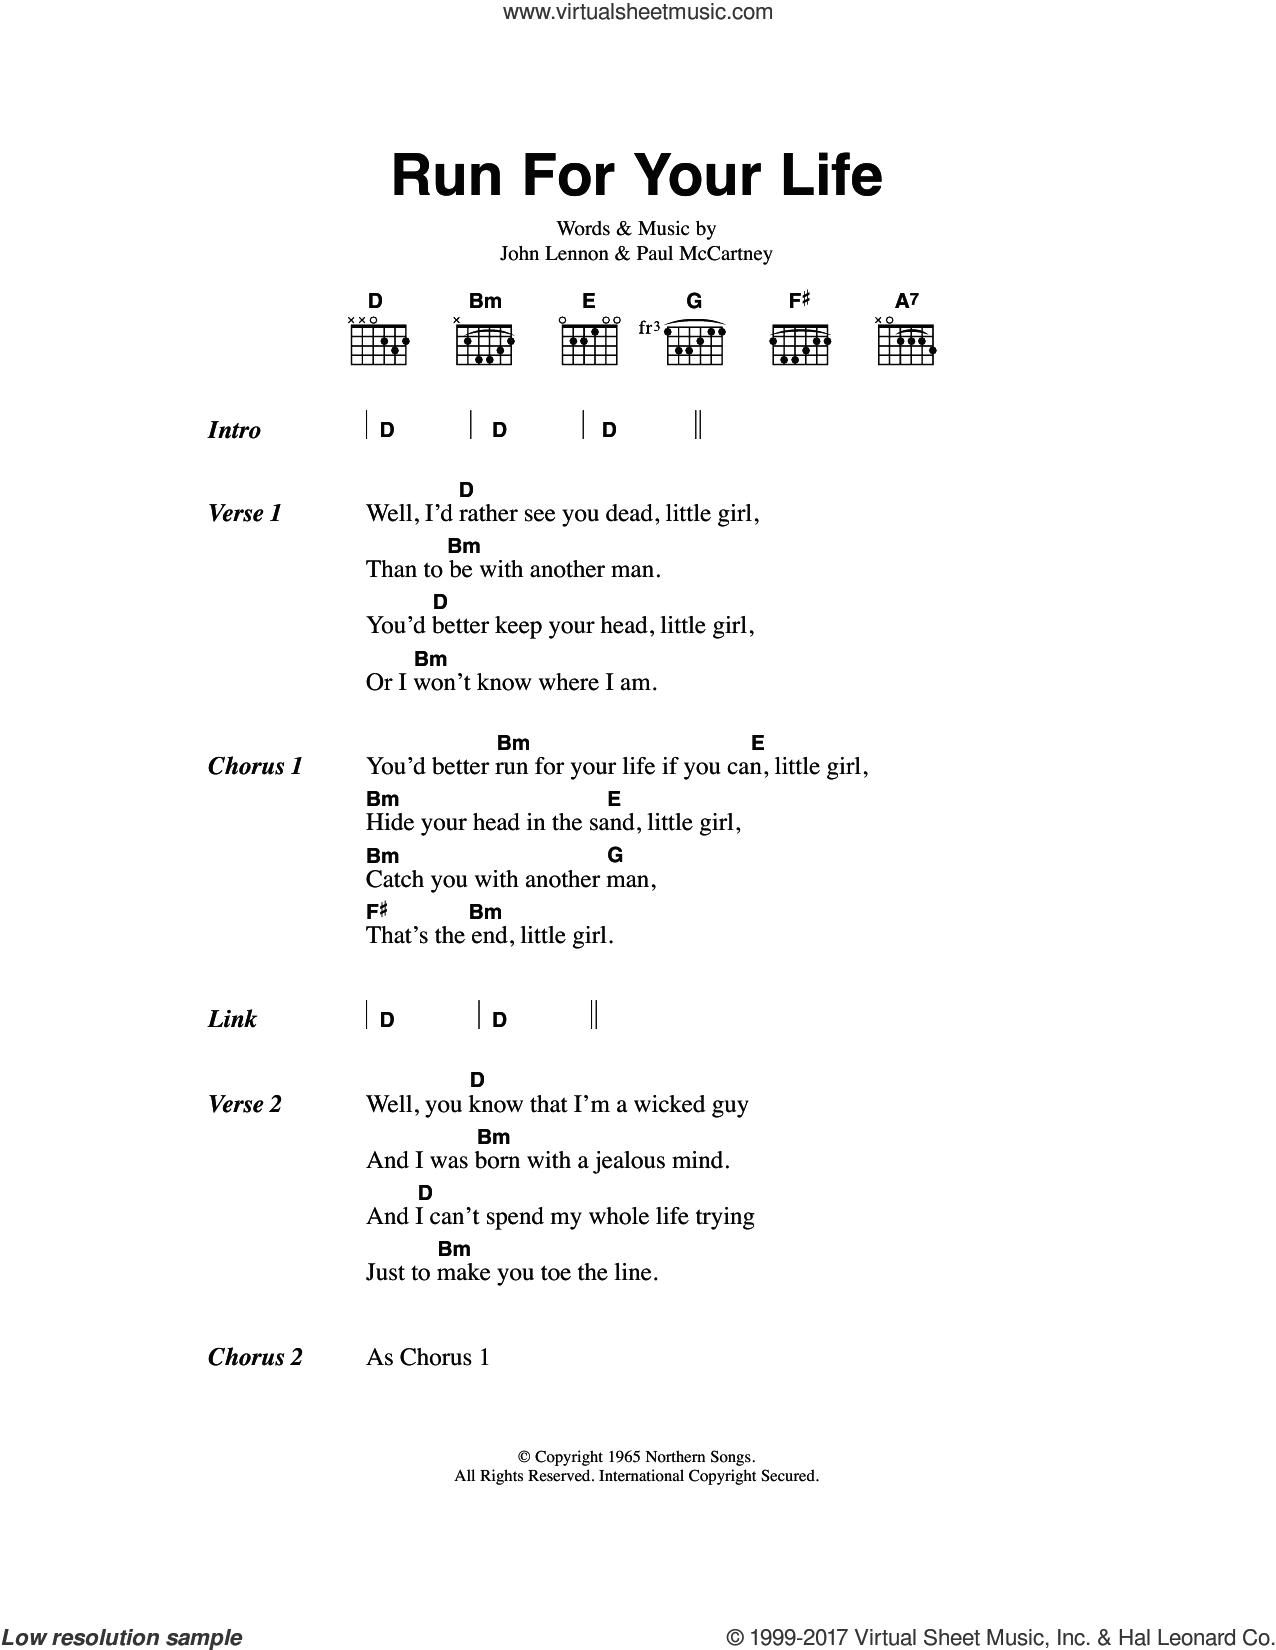 Run For Your Life sheet music for guitar (chords) by The Beatles, John Lennon and Paul McCartney, intermediate skill level